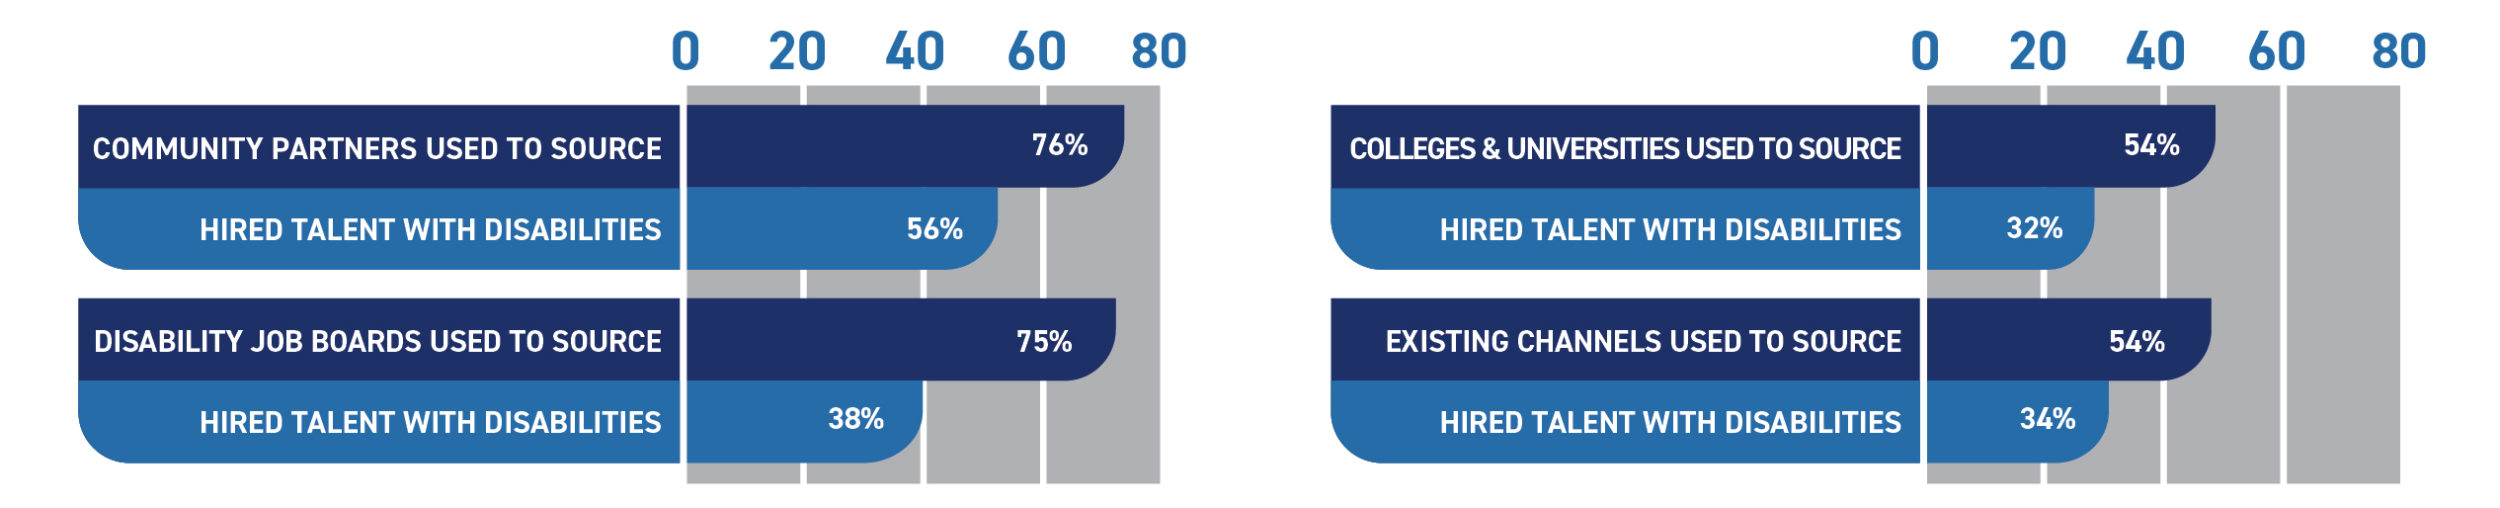 Graph showing percentage of companies using sourcing specific channels, and of those, whether any hired talent with disabilities through them. Community Partners: 76% used, 56% hired; Disability Job Board: 75% used, 38% hired; Colleges + Universities: 54% used, 32% hired; Existing Channels: 54% used, 34% hired.